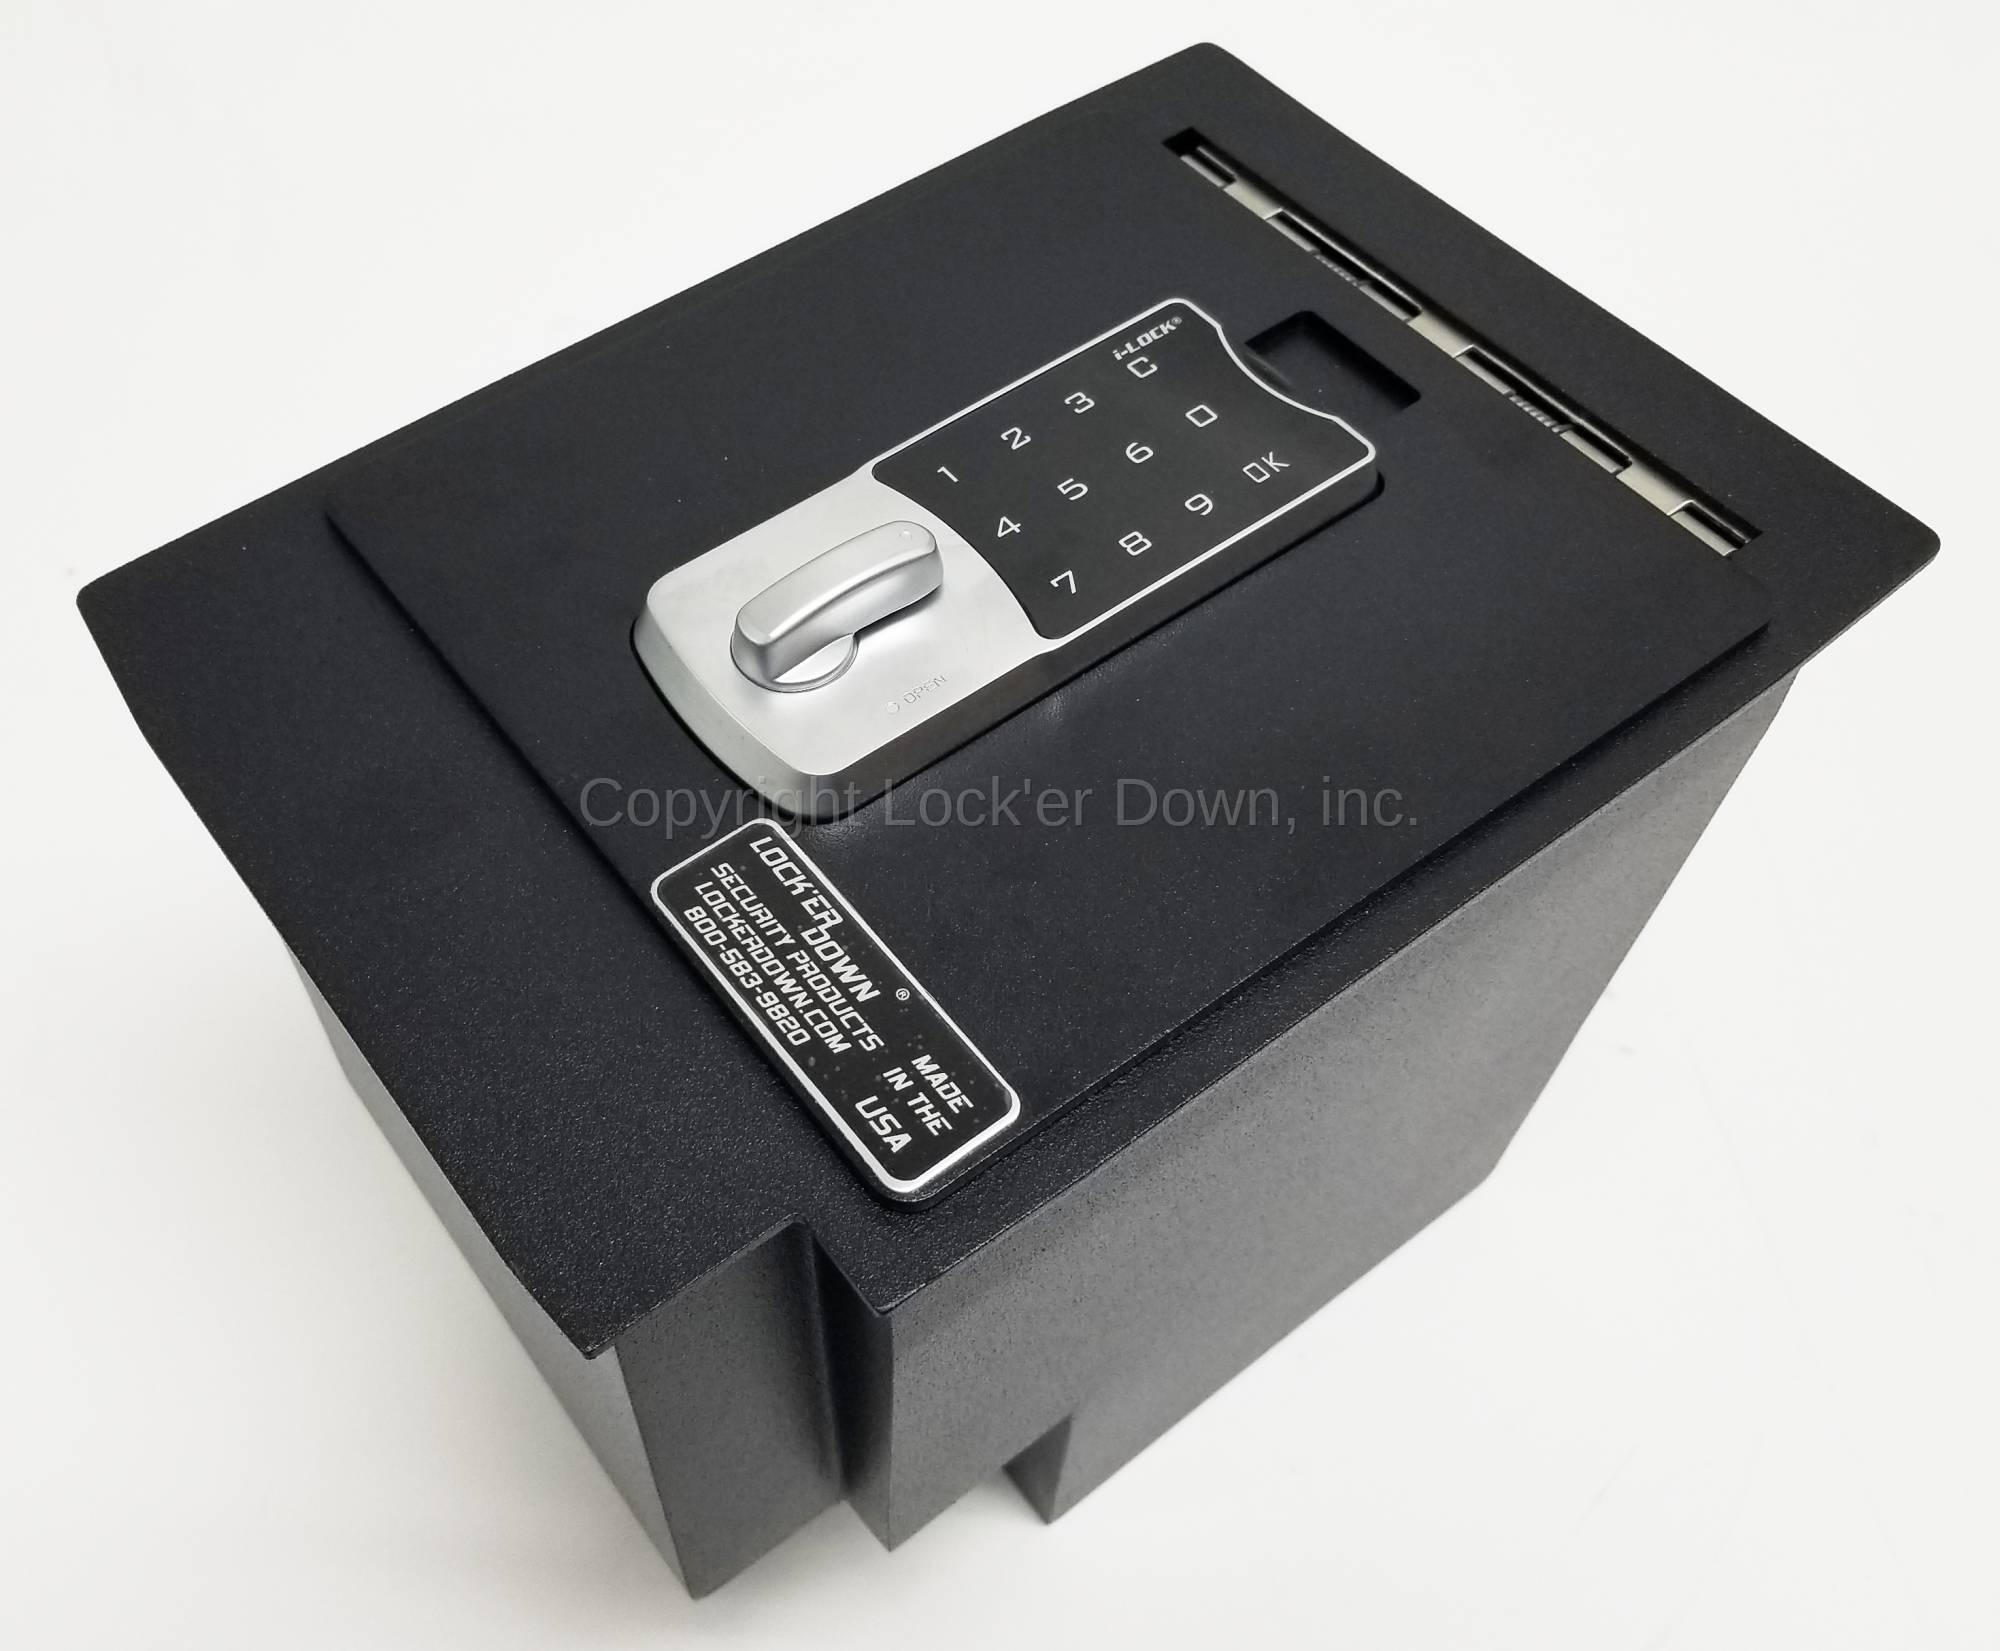 Exxtreme Console Safe 2010 19 Toyota 4runner